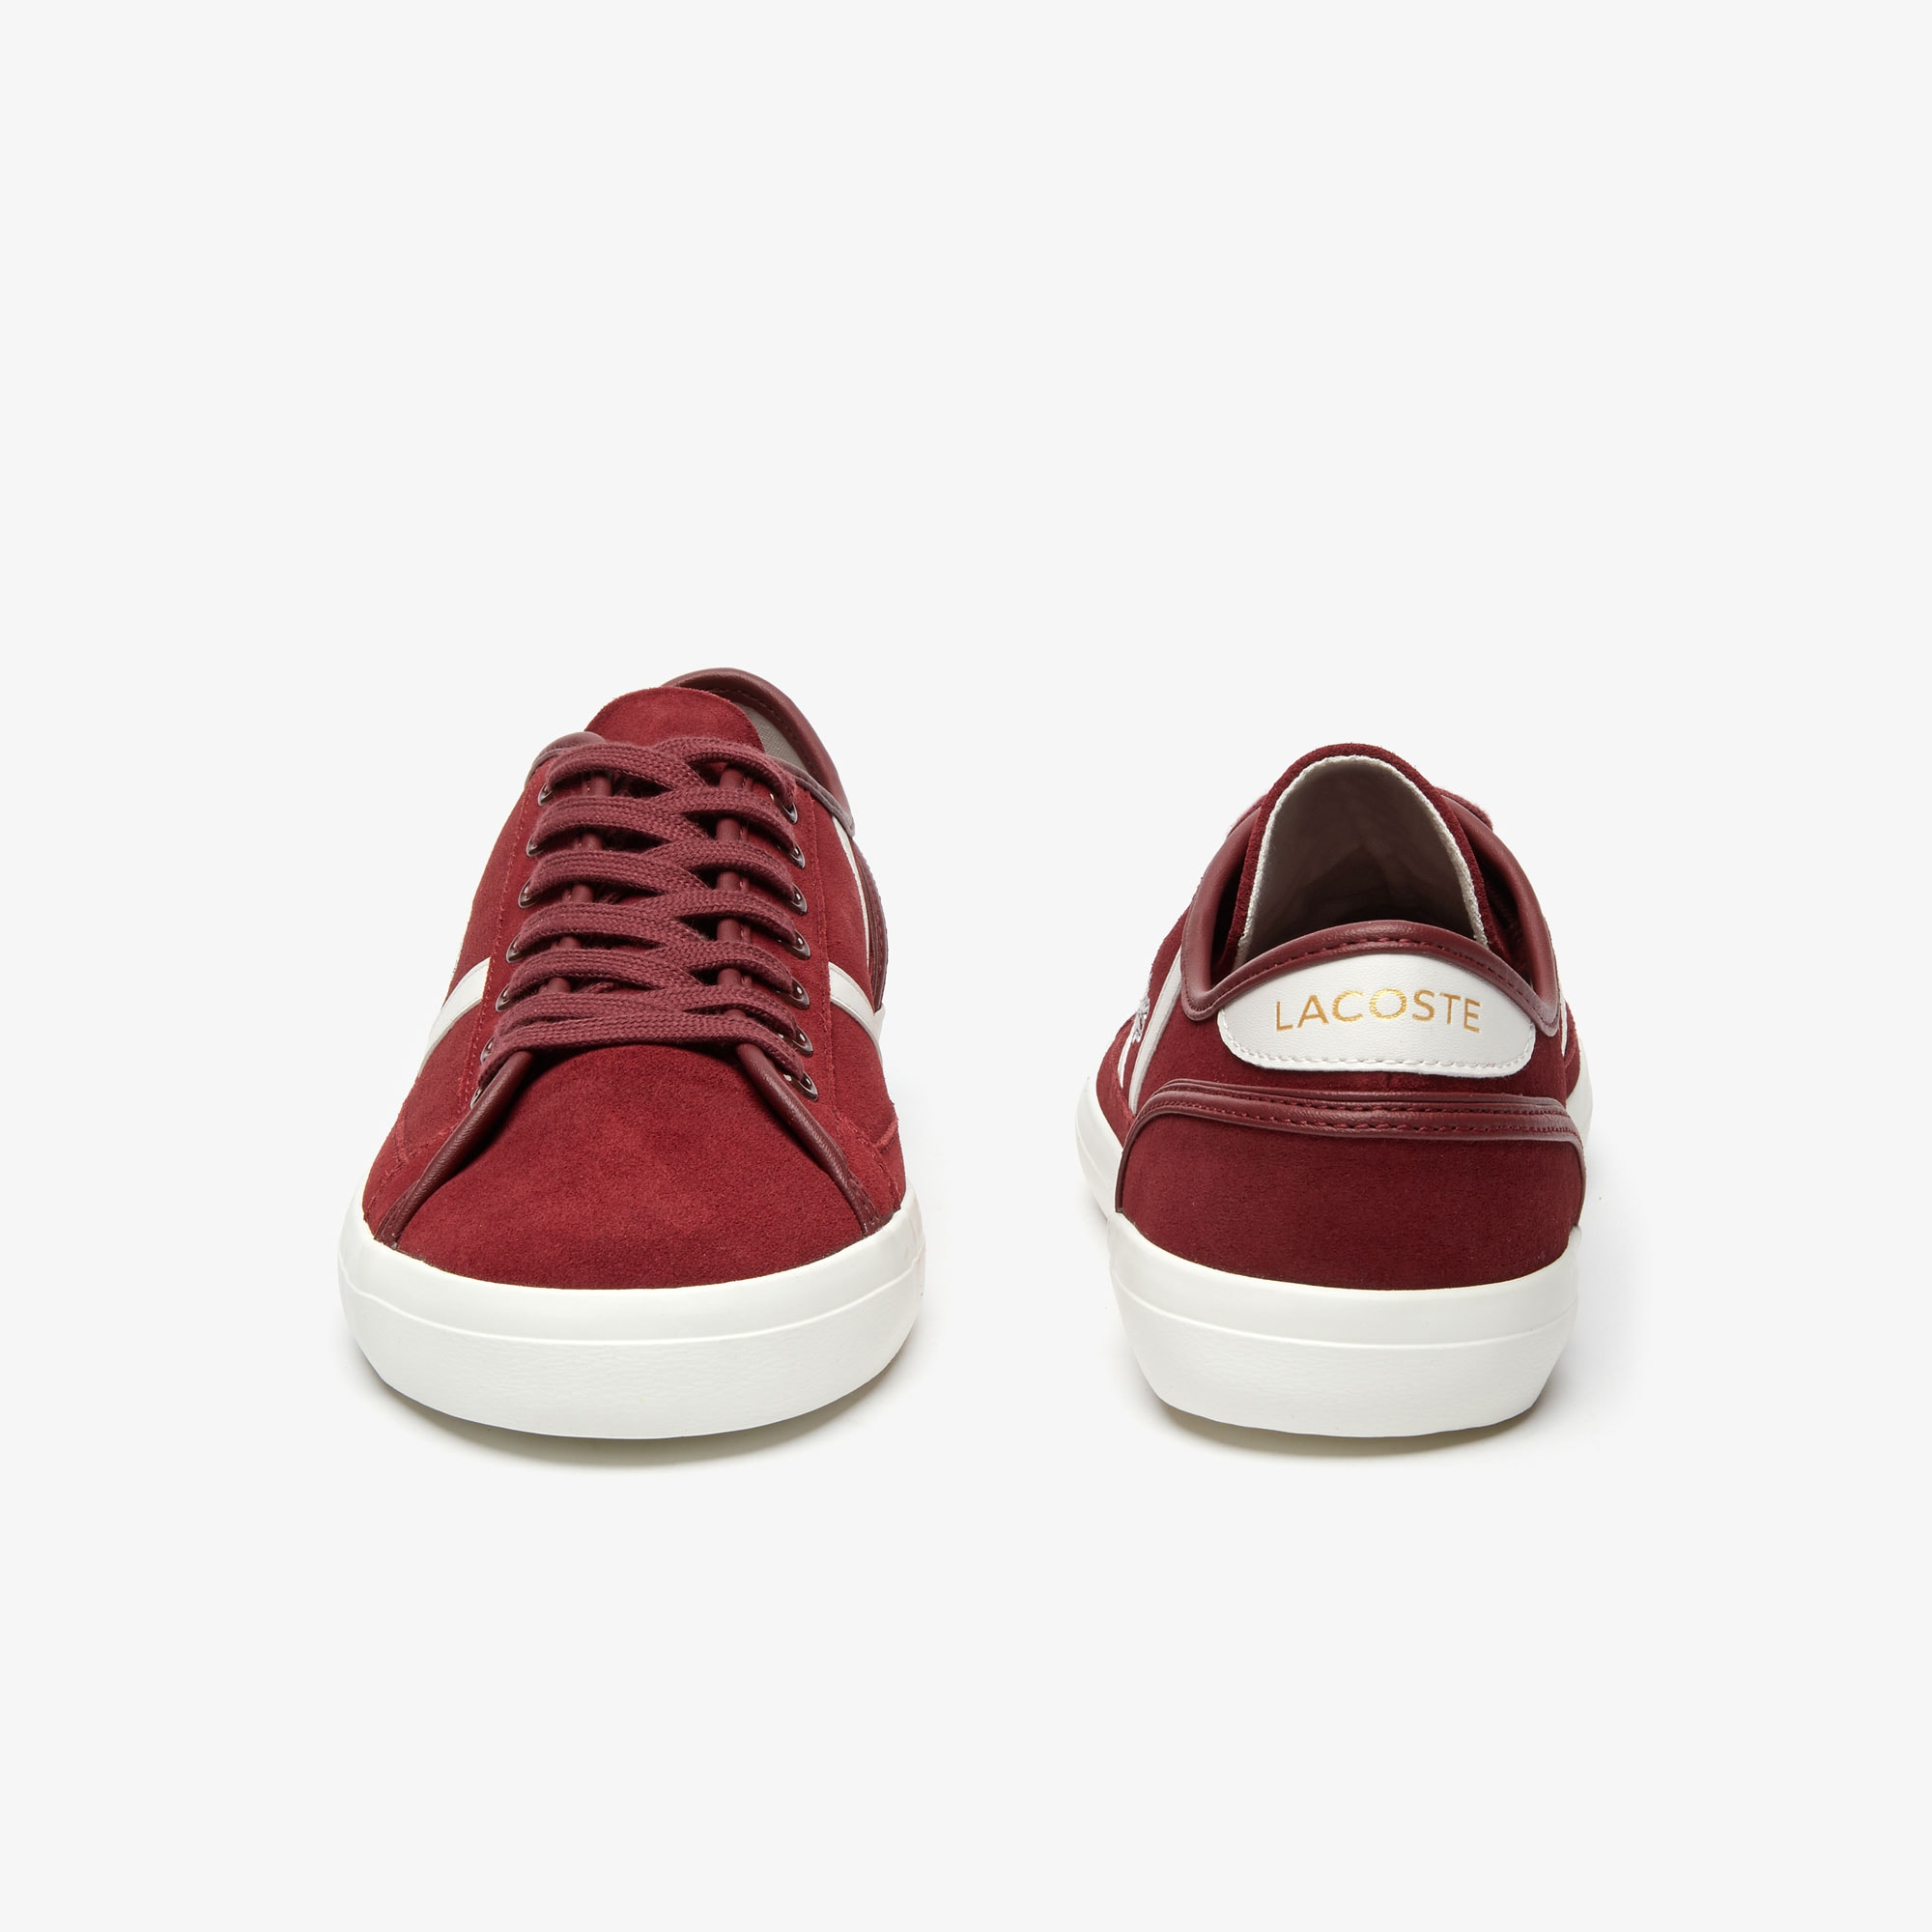 Men's Sideline Suede Sneakers